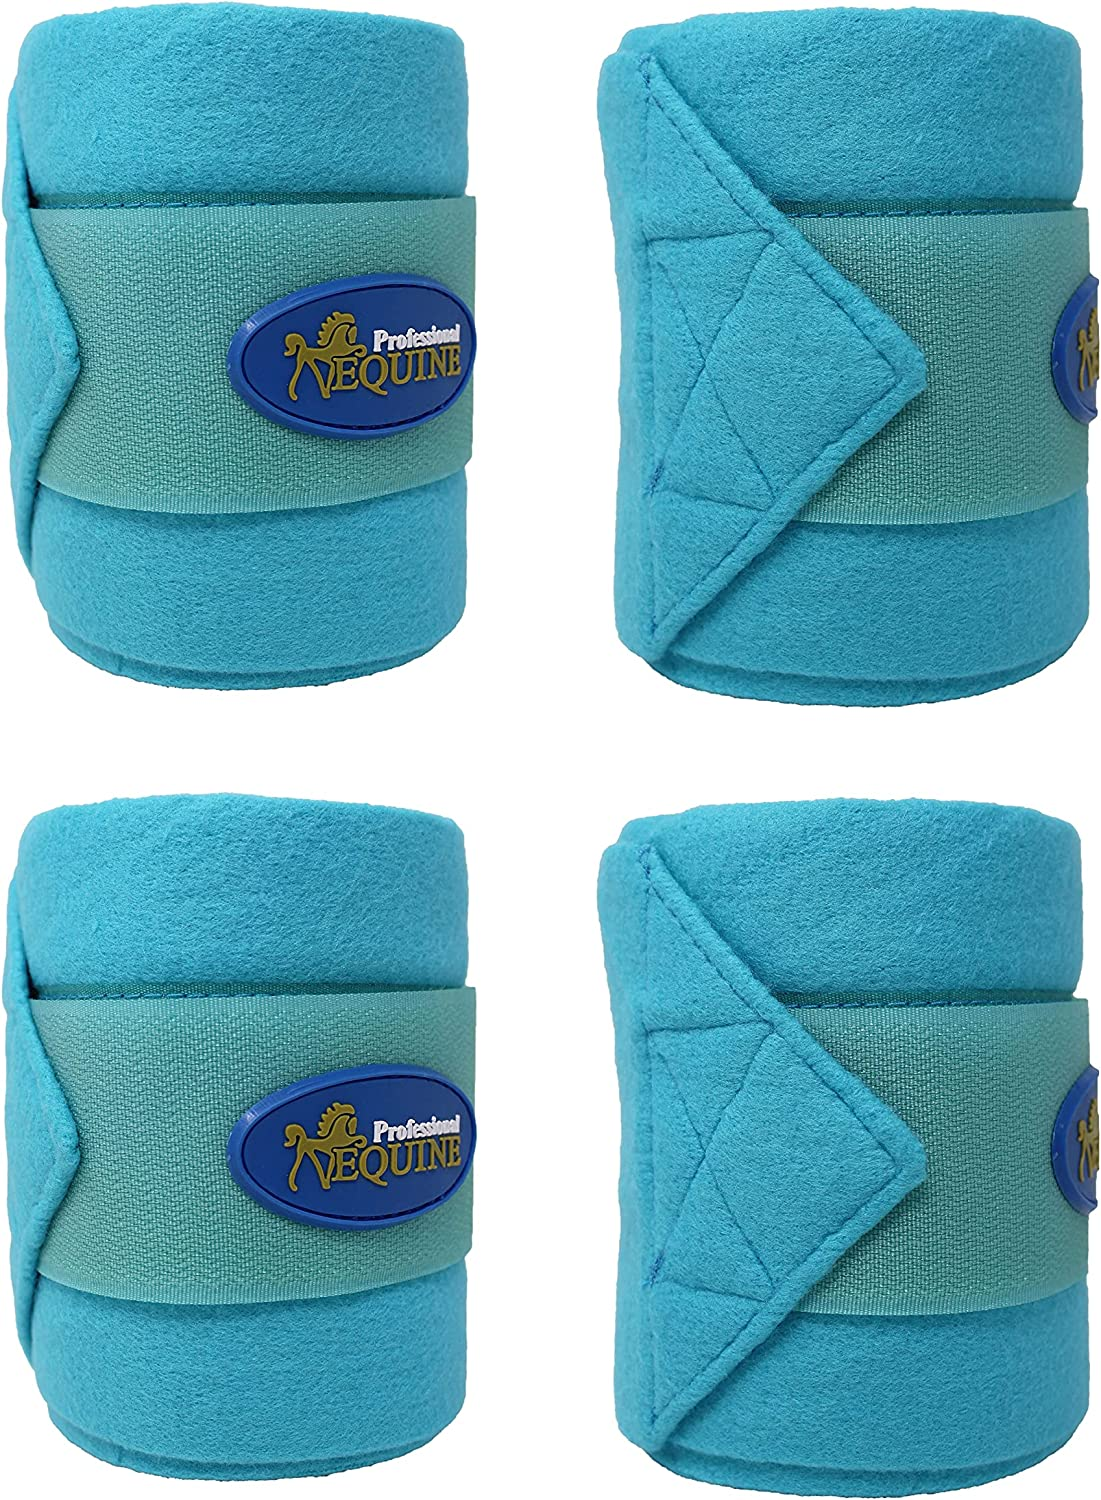 CHALLENGER Horse Tack Grooming Leg Set of 4 Fleece Polo Wrap Turquoise 95R15: Sports & Outdoors